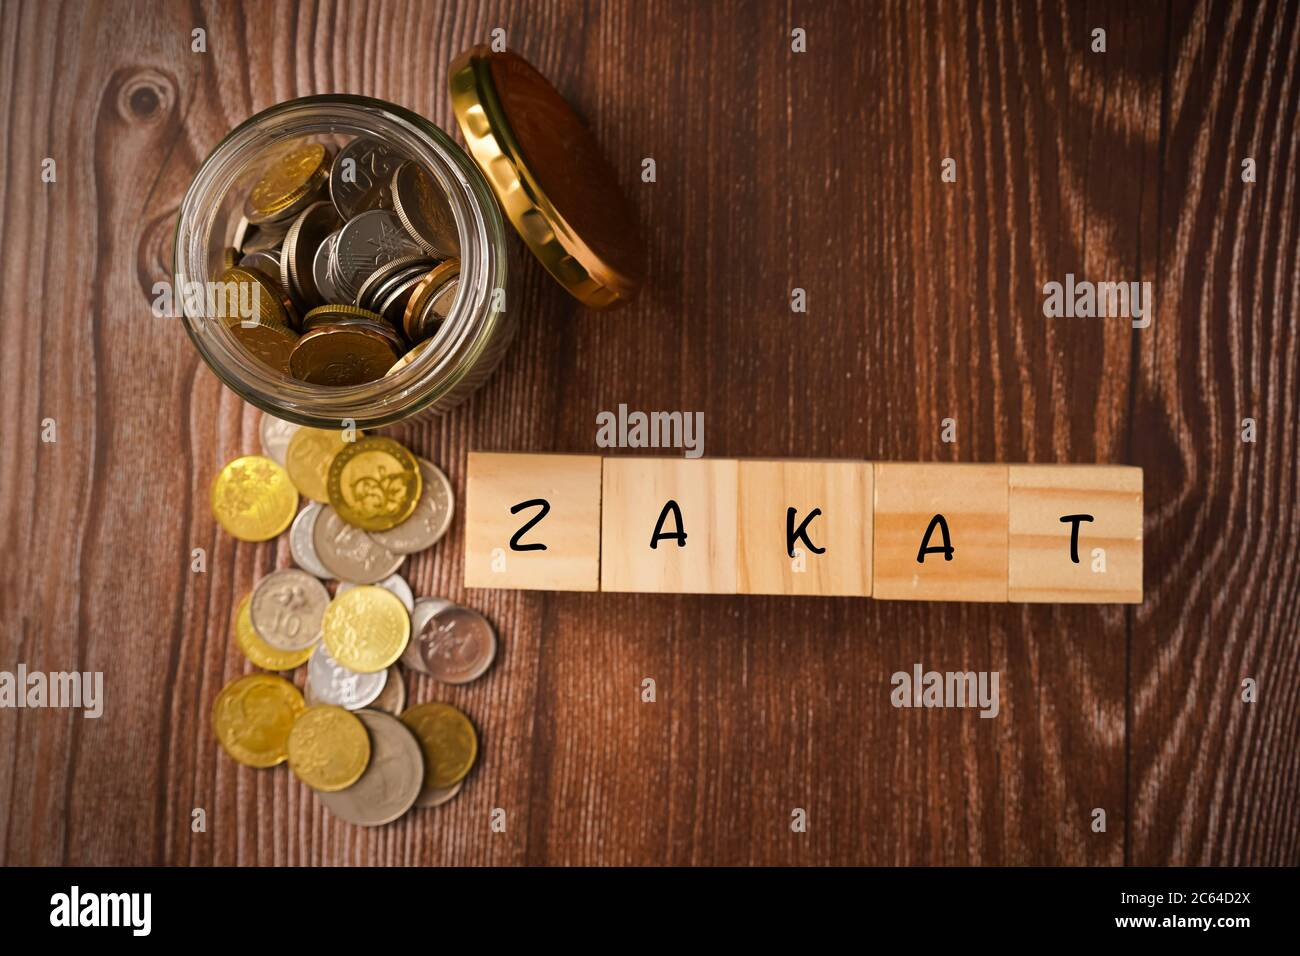 zakat islamic concept zakat wordings wih coins in jar on wooden background stock photo alamy https www alamy com zakat islamic concept zakat wordings wih coins in jar on wooden background image365203746 html